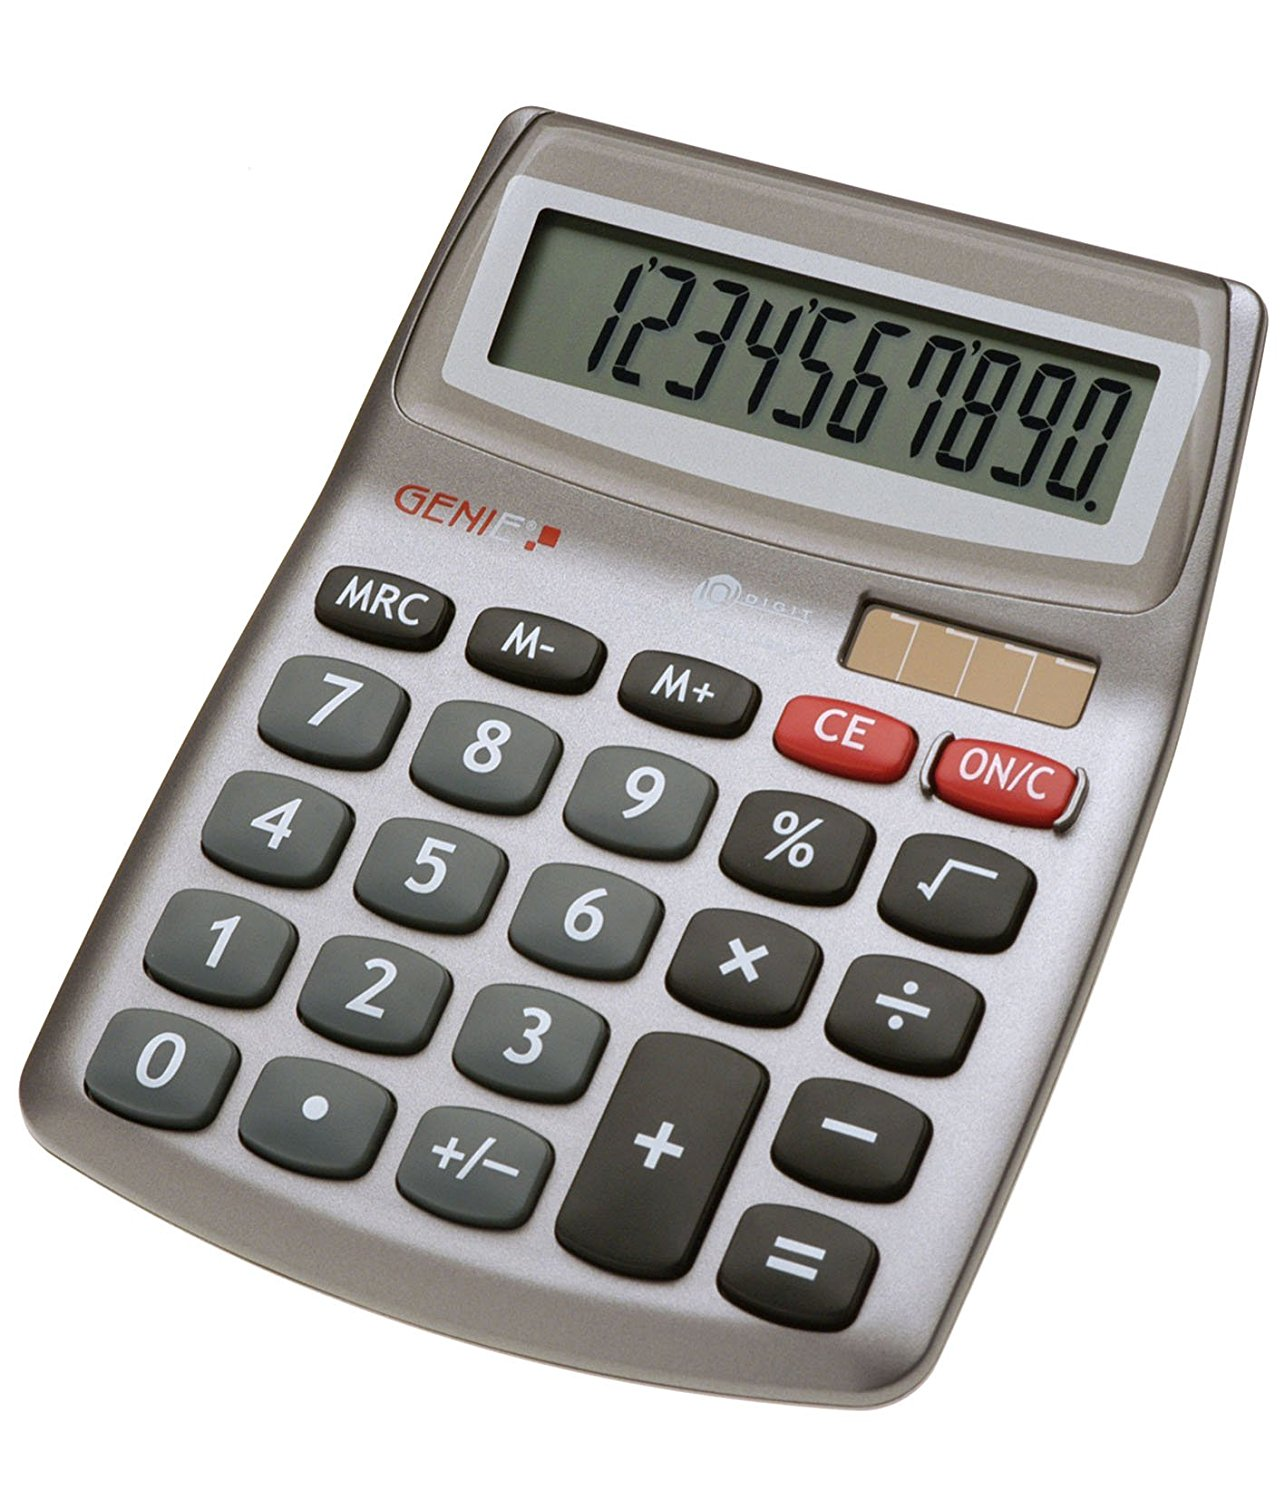 GENIE CCTV 10272 VALUE 540 10-DIGIT DESKTOP CALCULATOR